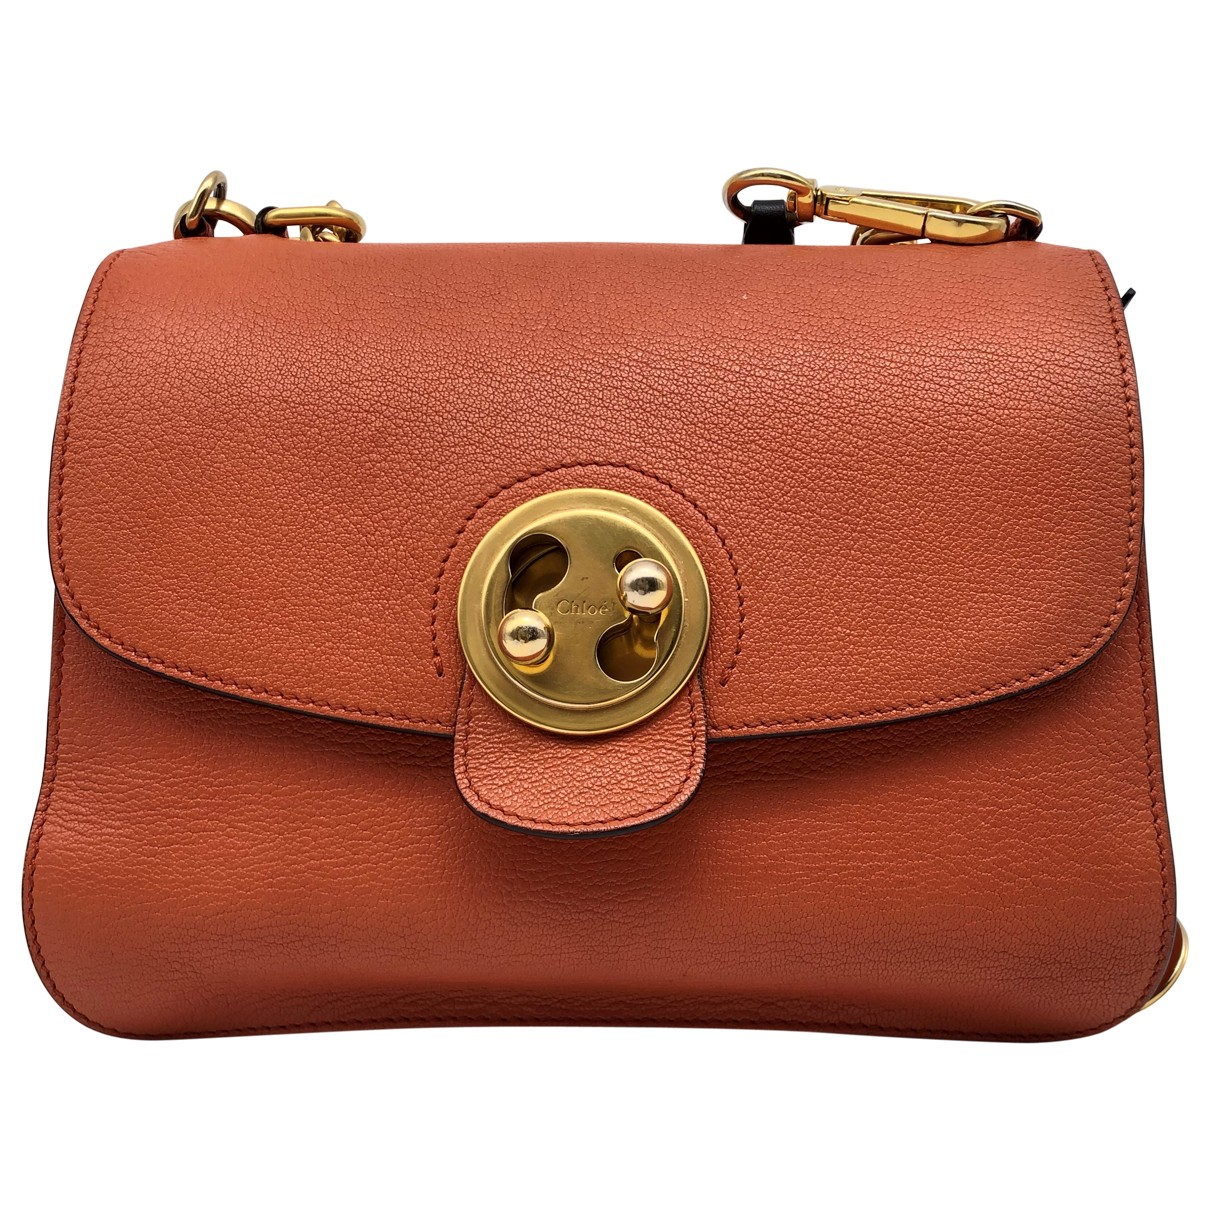 Chloé Mily Orange Leather handbag for Women N